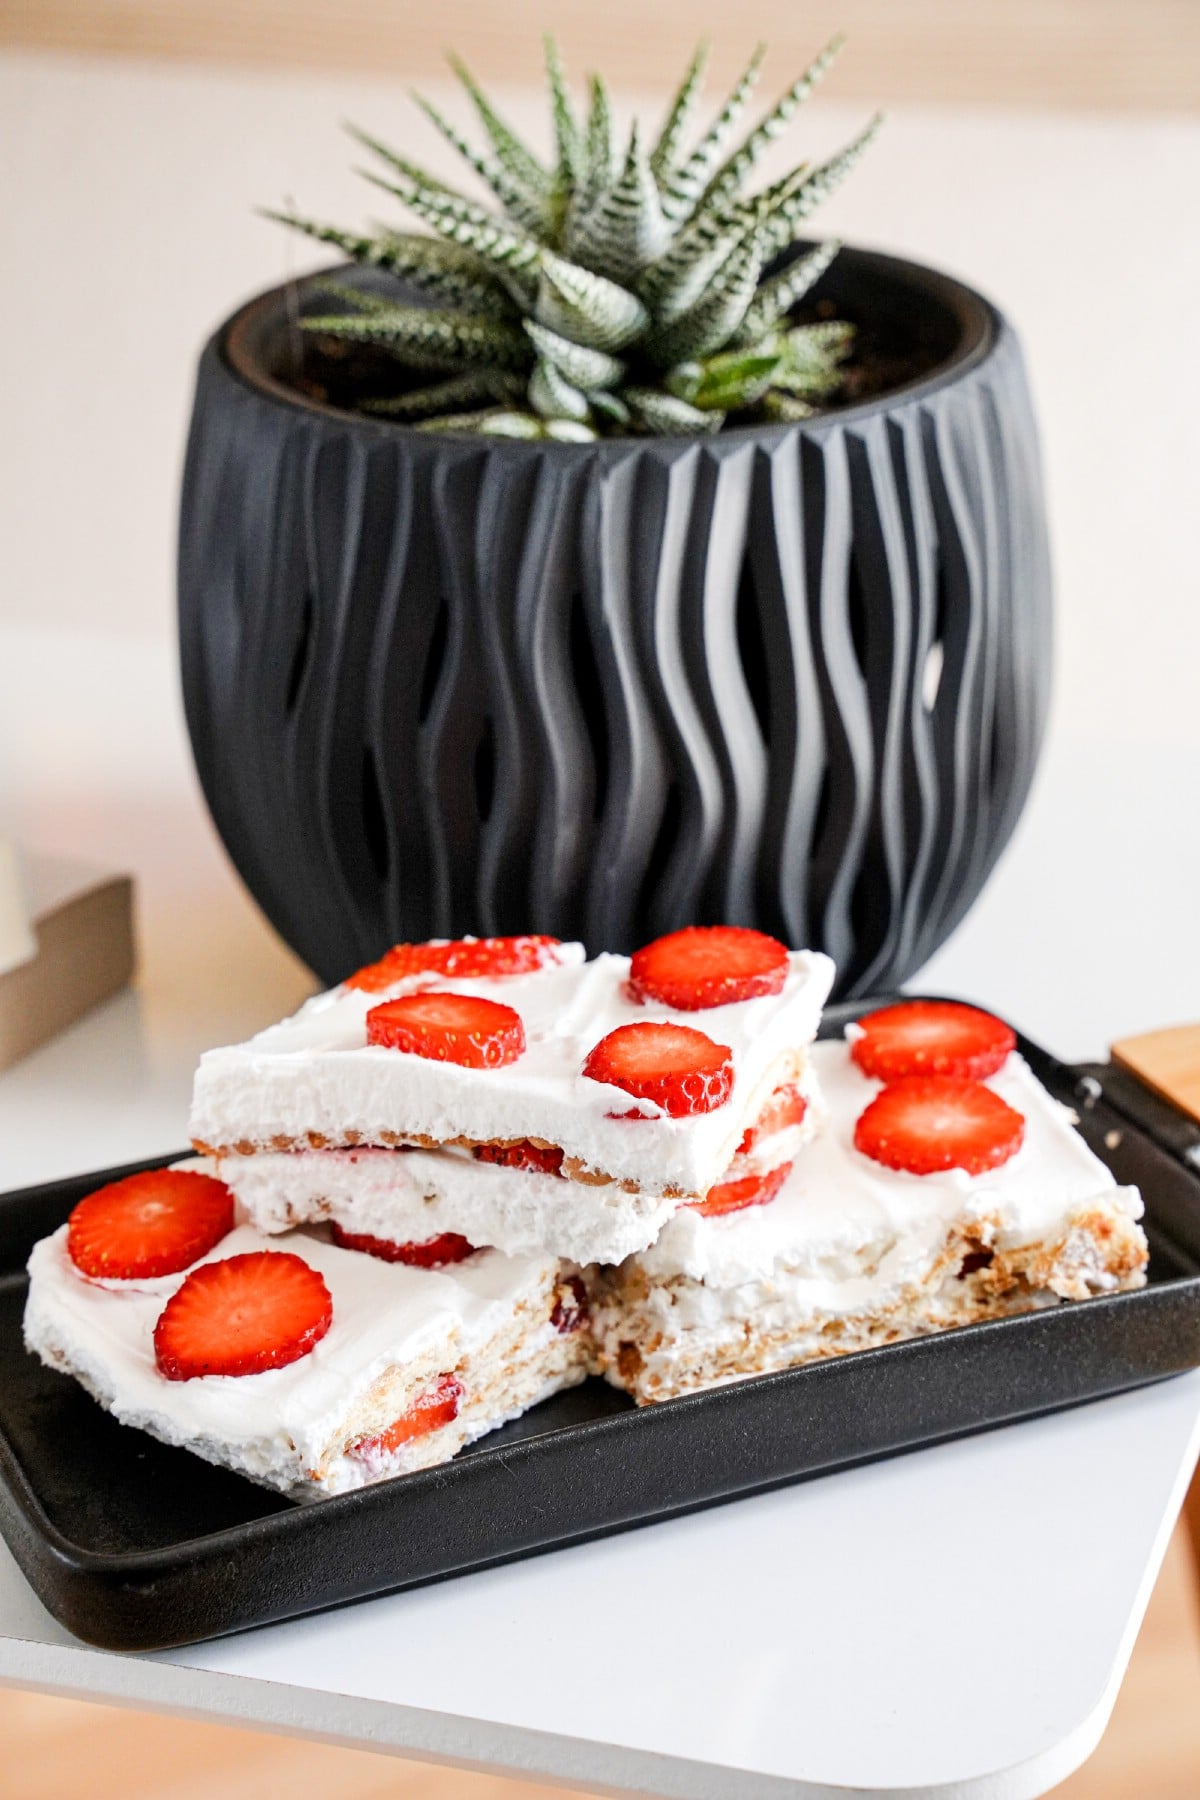 Black platter with slices of strawberry icebox pie sitting in front of black planter